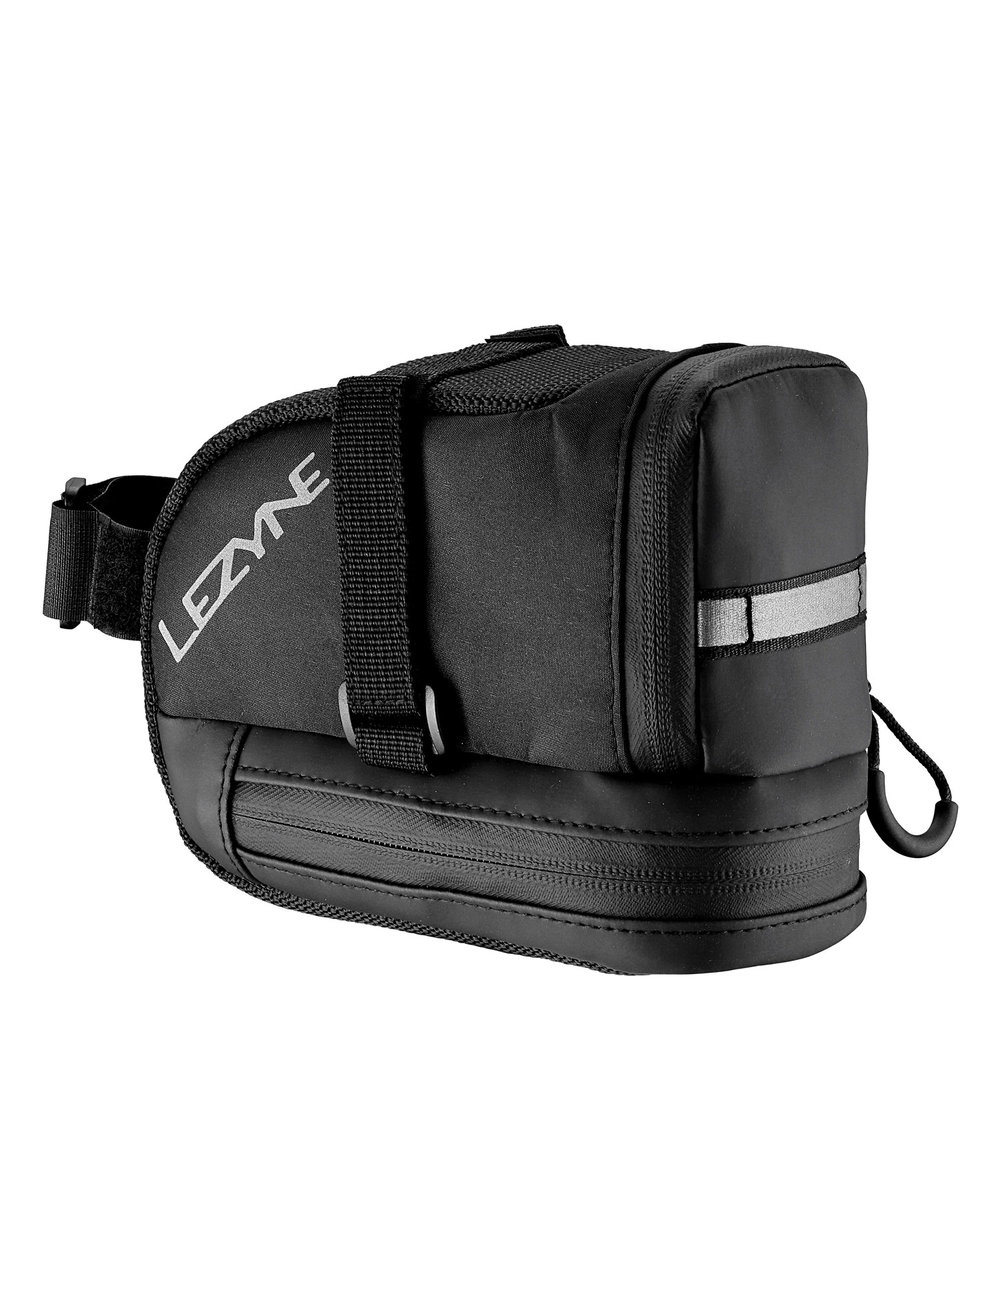 Large capacity, wedge-shaped saddle bag. Sub compartment for multi-tool or mobile device. Reflective loop increases night visibility. Water resistant zipper with large pull loop.